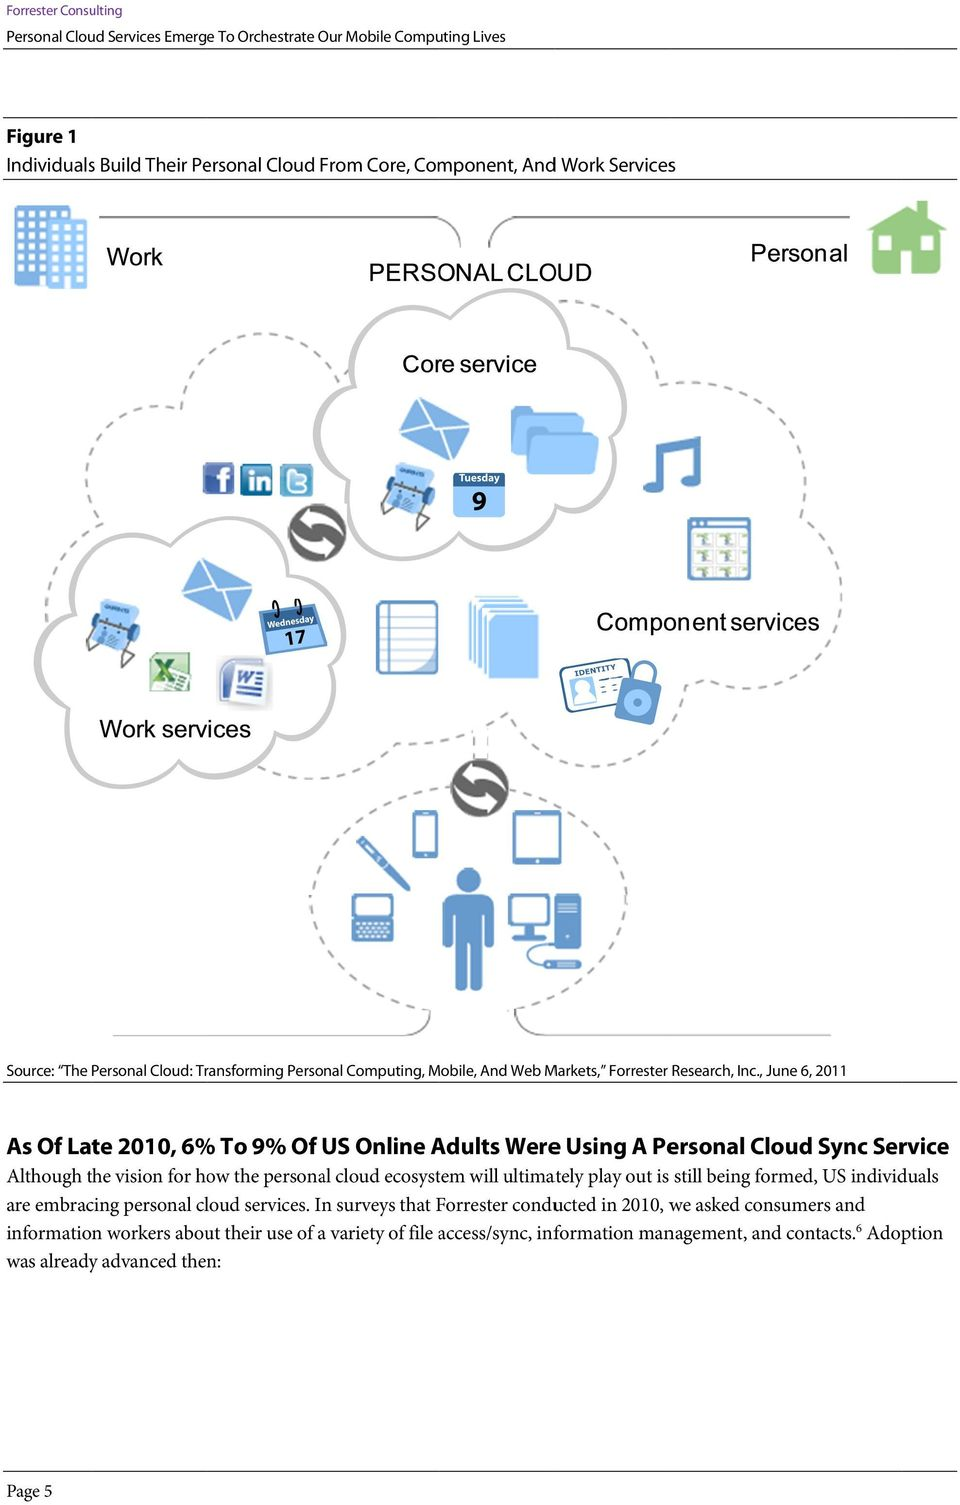 , June 6, 2011 As Of Late 2010, 6% To 9% Of US Online Adults Weree Using A Personal Cloud Sync Service Although the vision for how the personal cloud ecosystem will